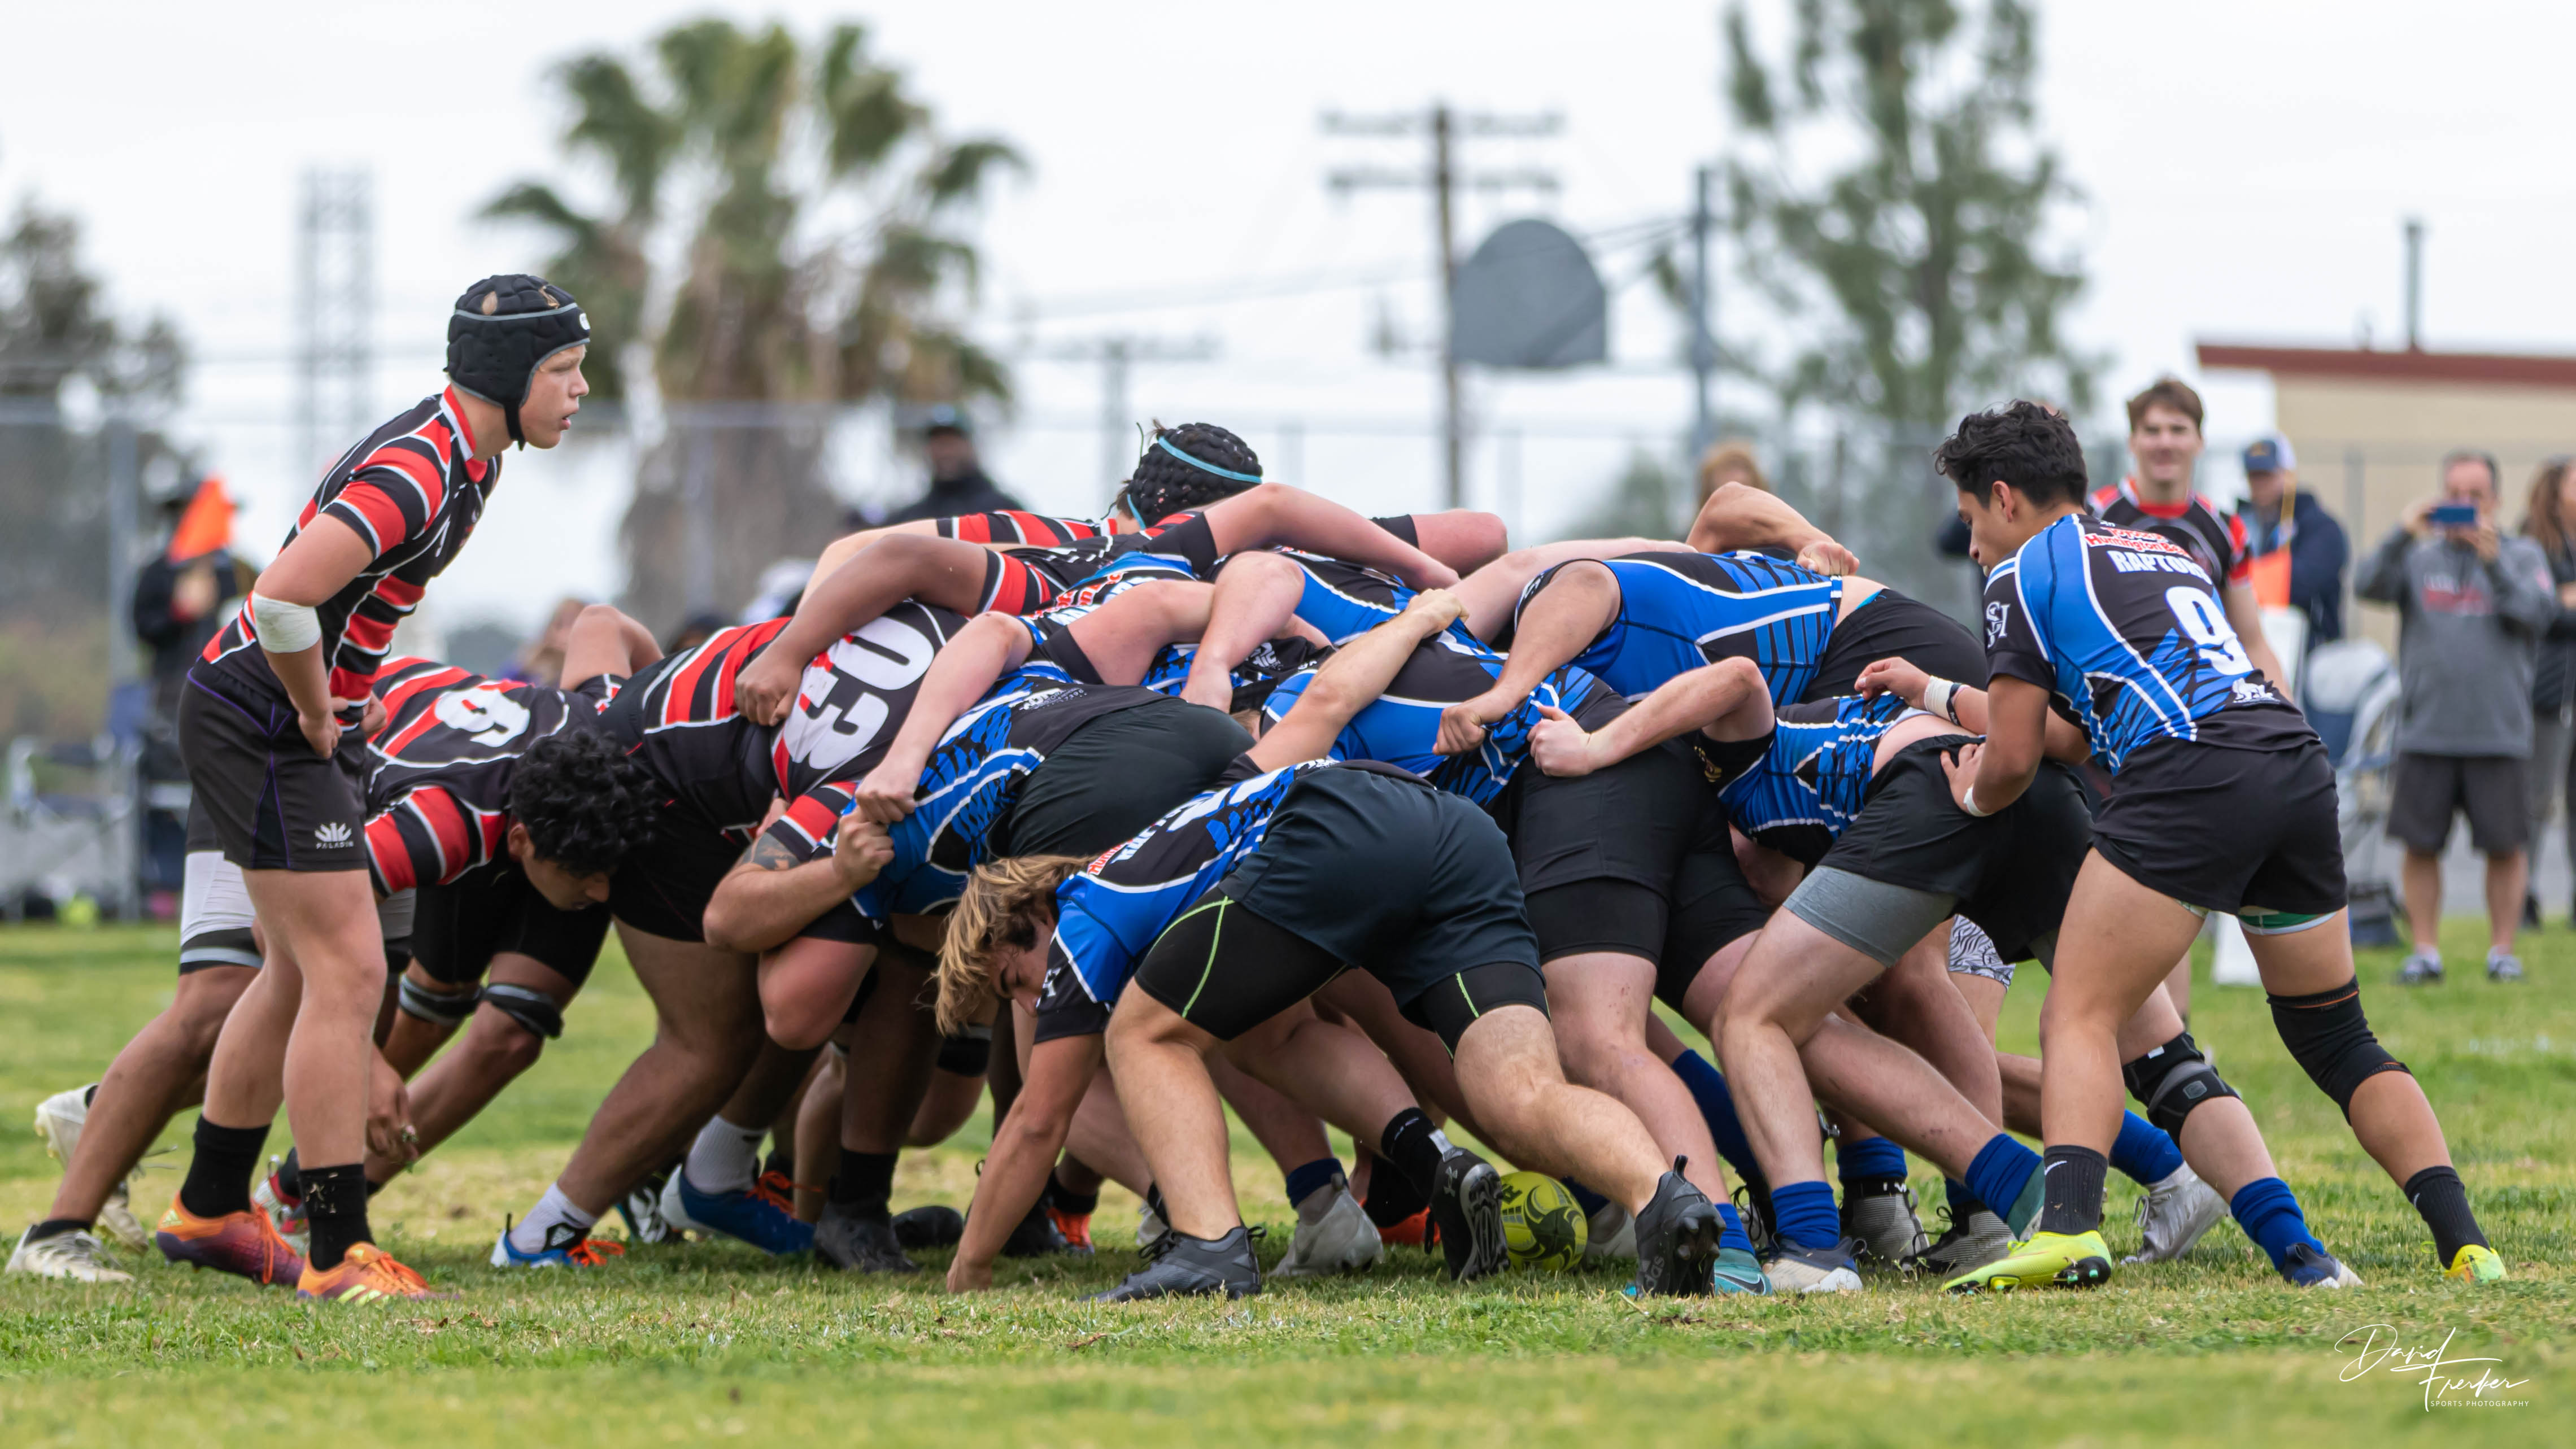 LaJollaRugby74